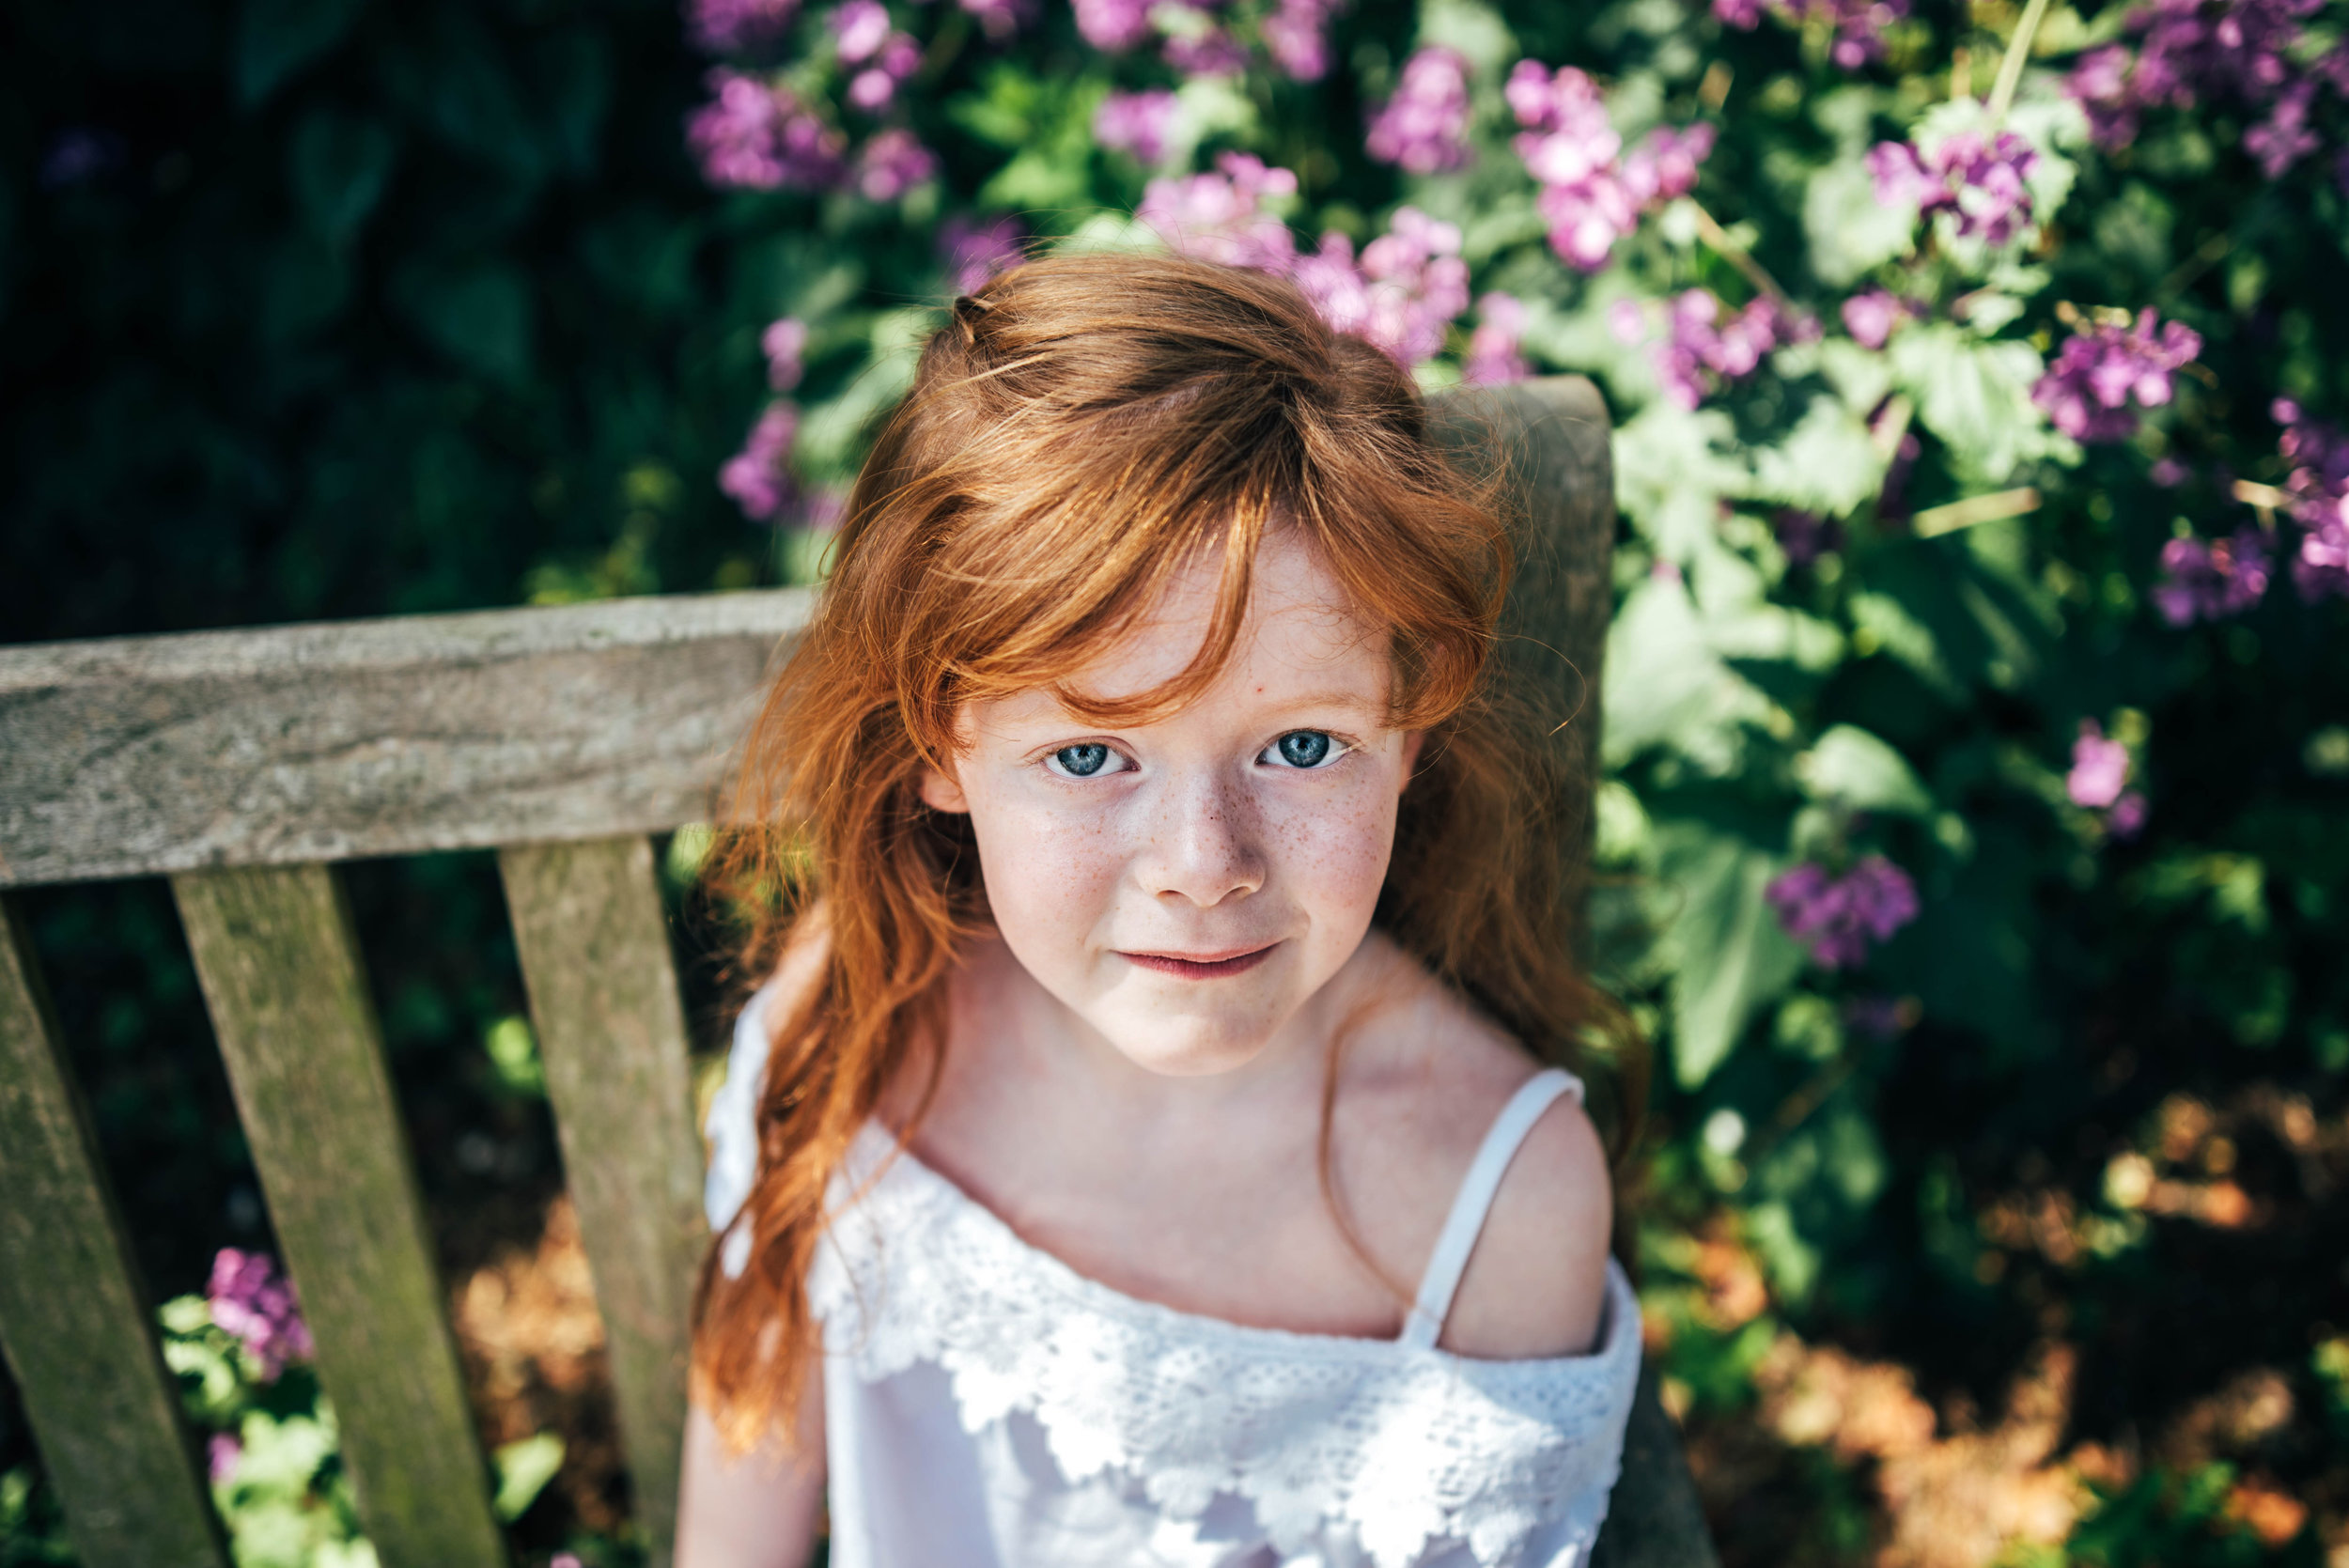 Red haired girl looks up at camera from a bench Essex Documentary Family Portrait Photographer